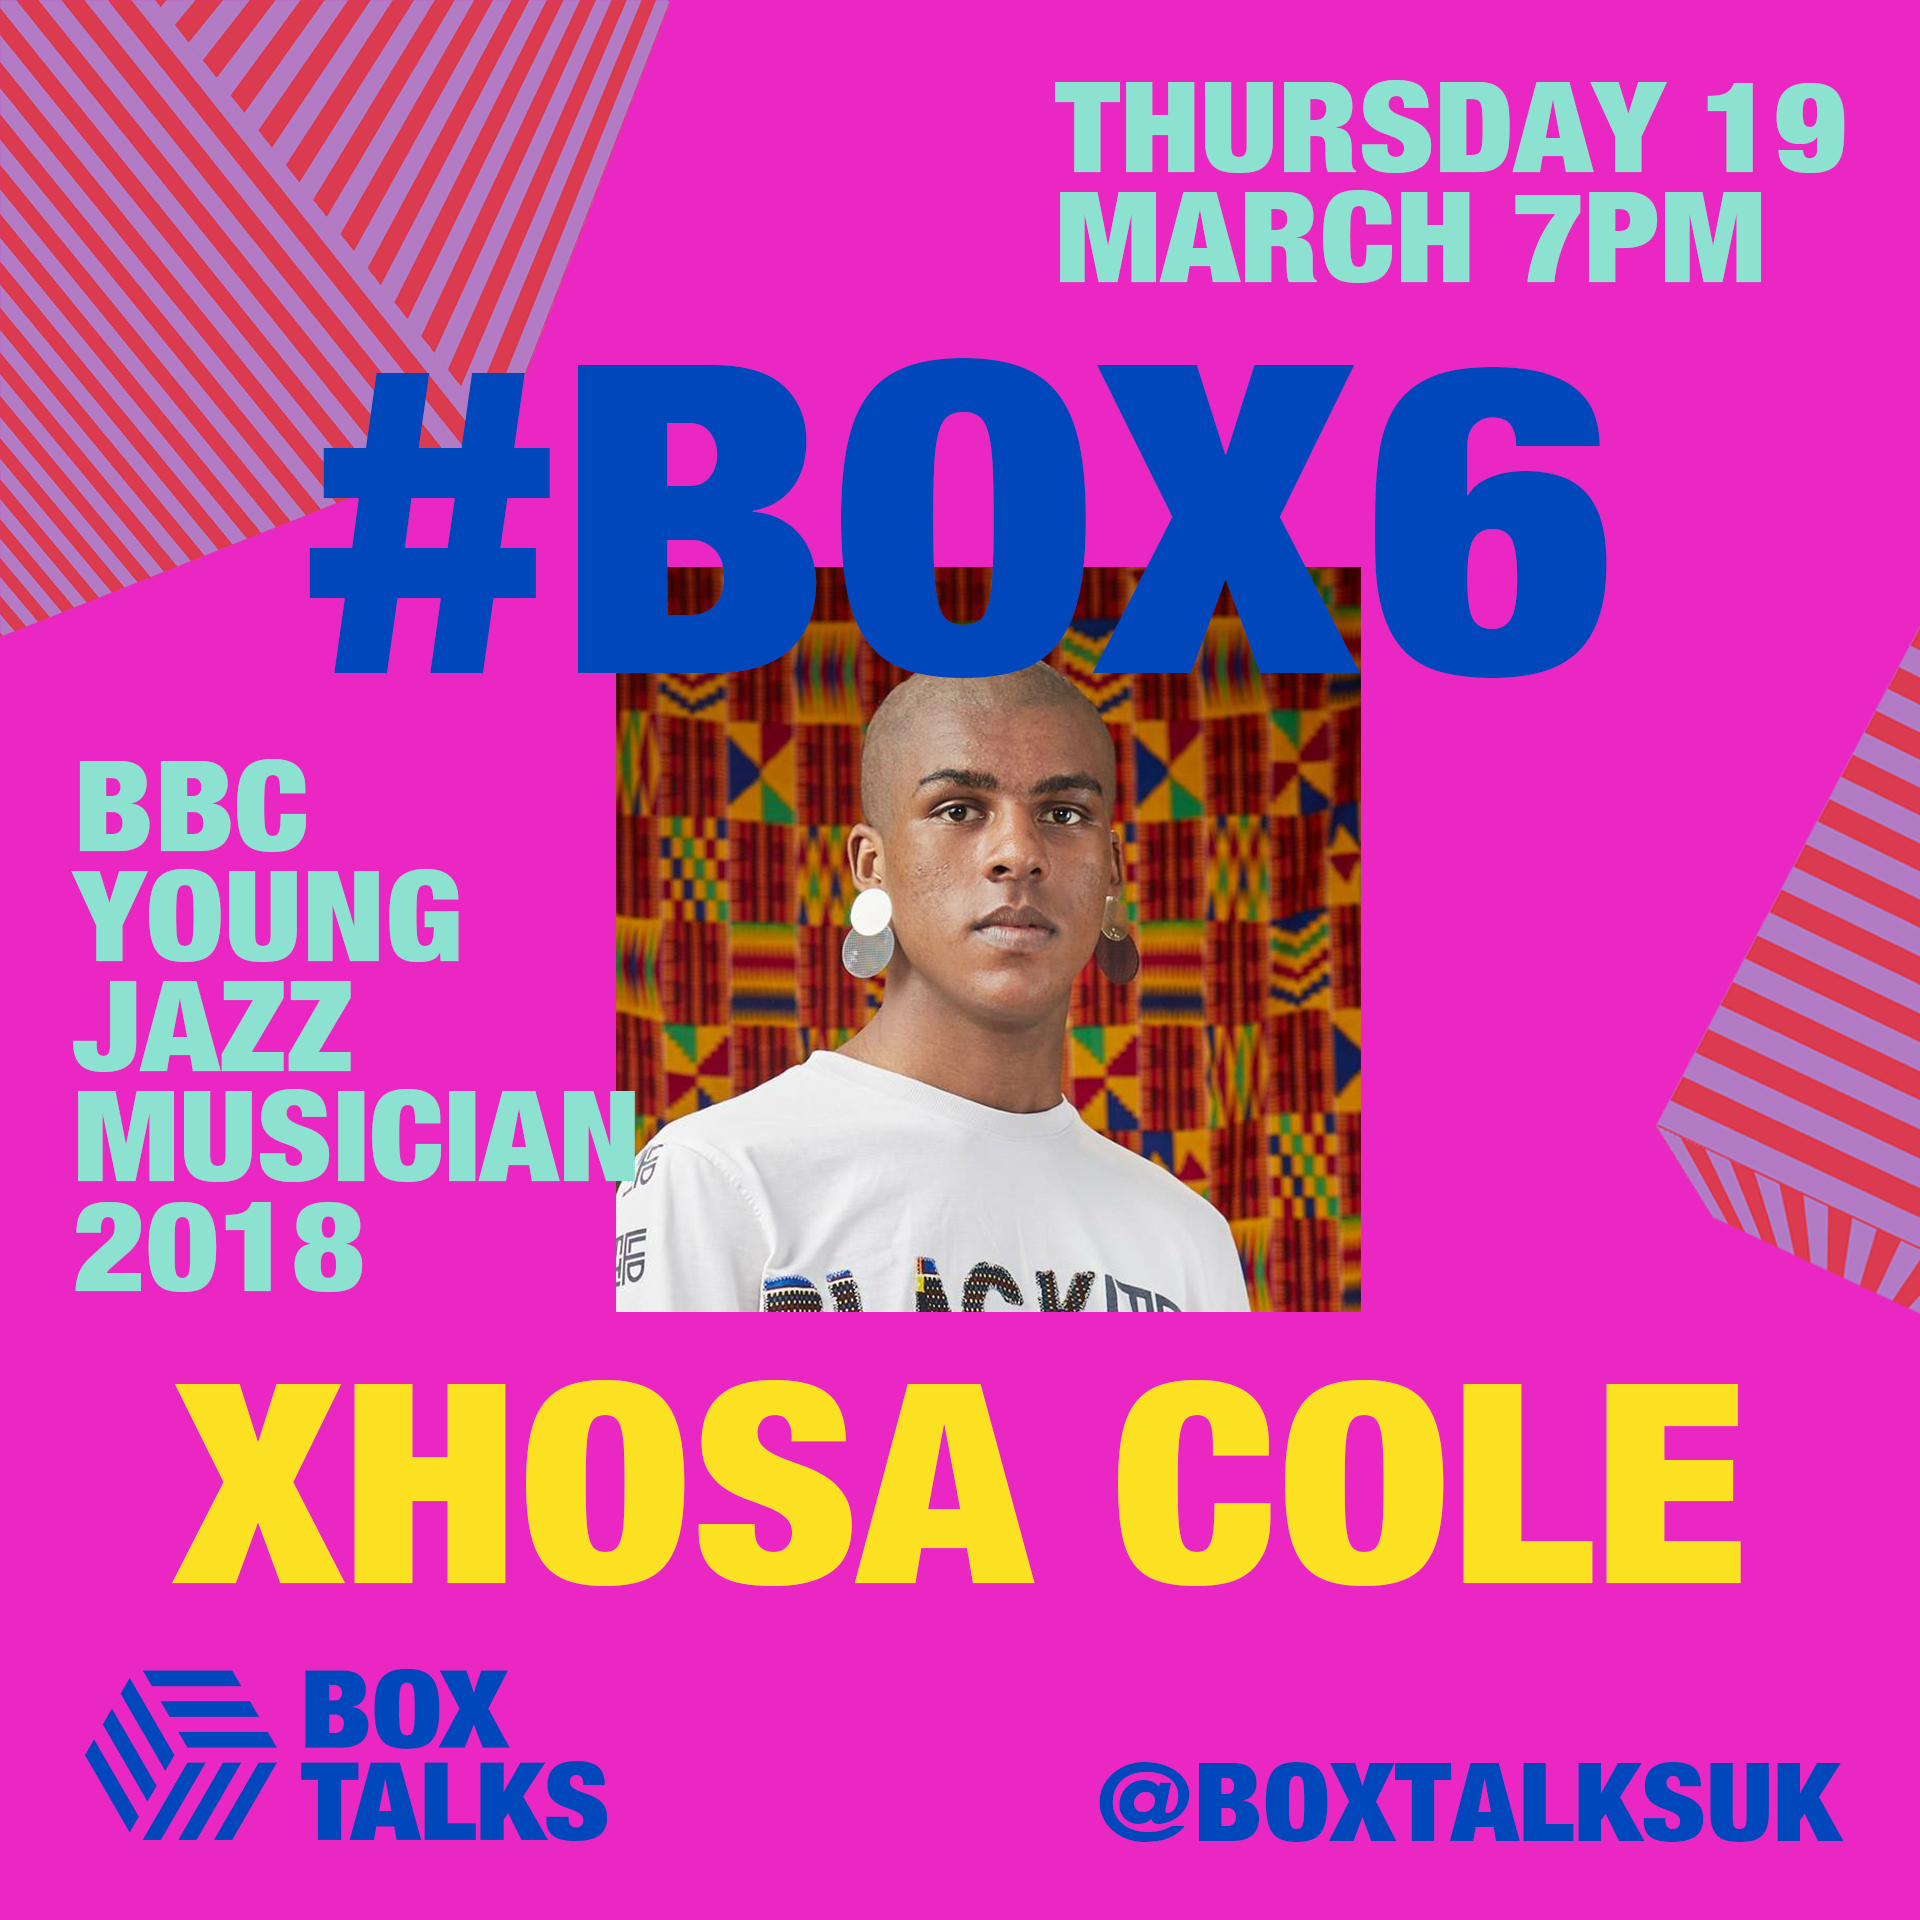 BOX TALKS #6 - Xhosa Cole: BBC Young Jazz Musician